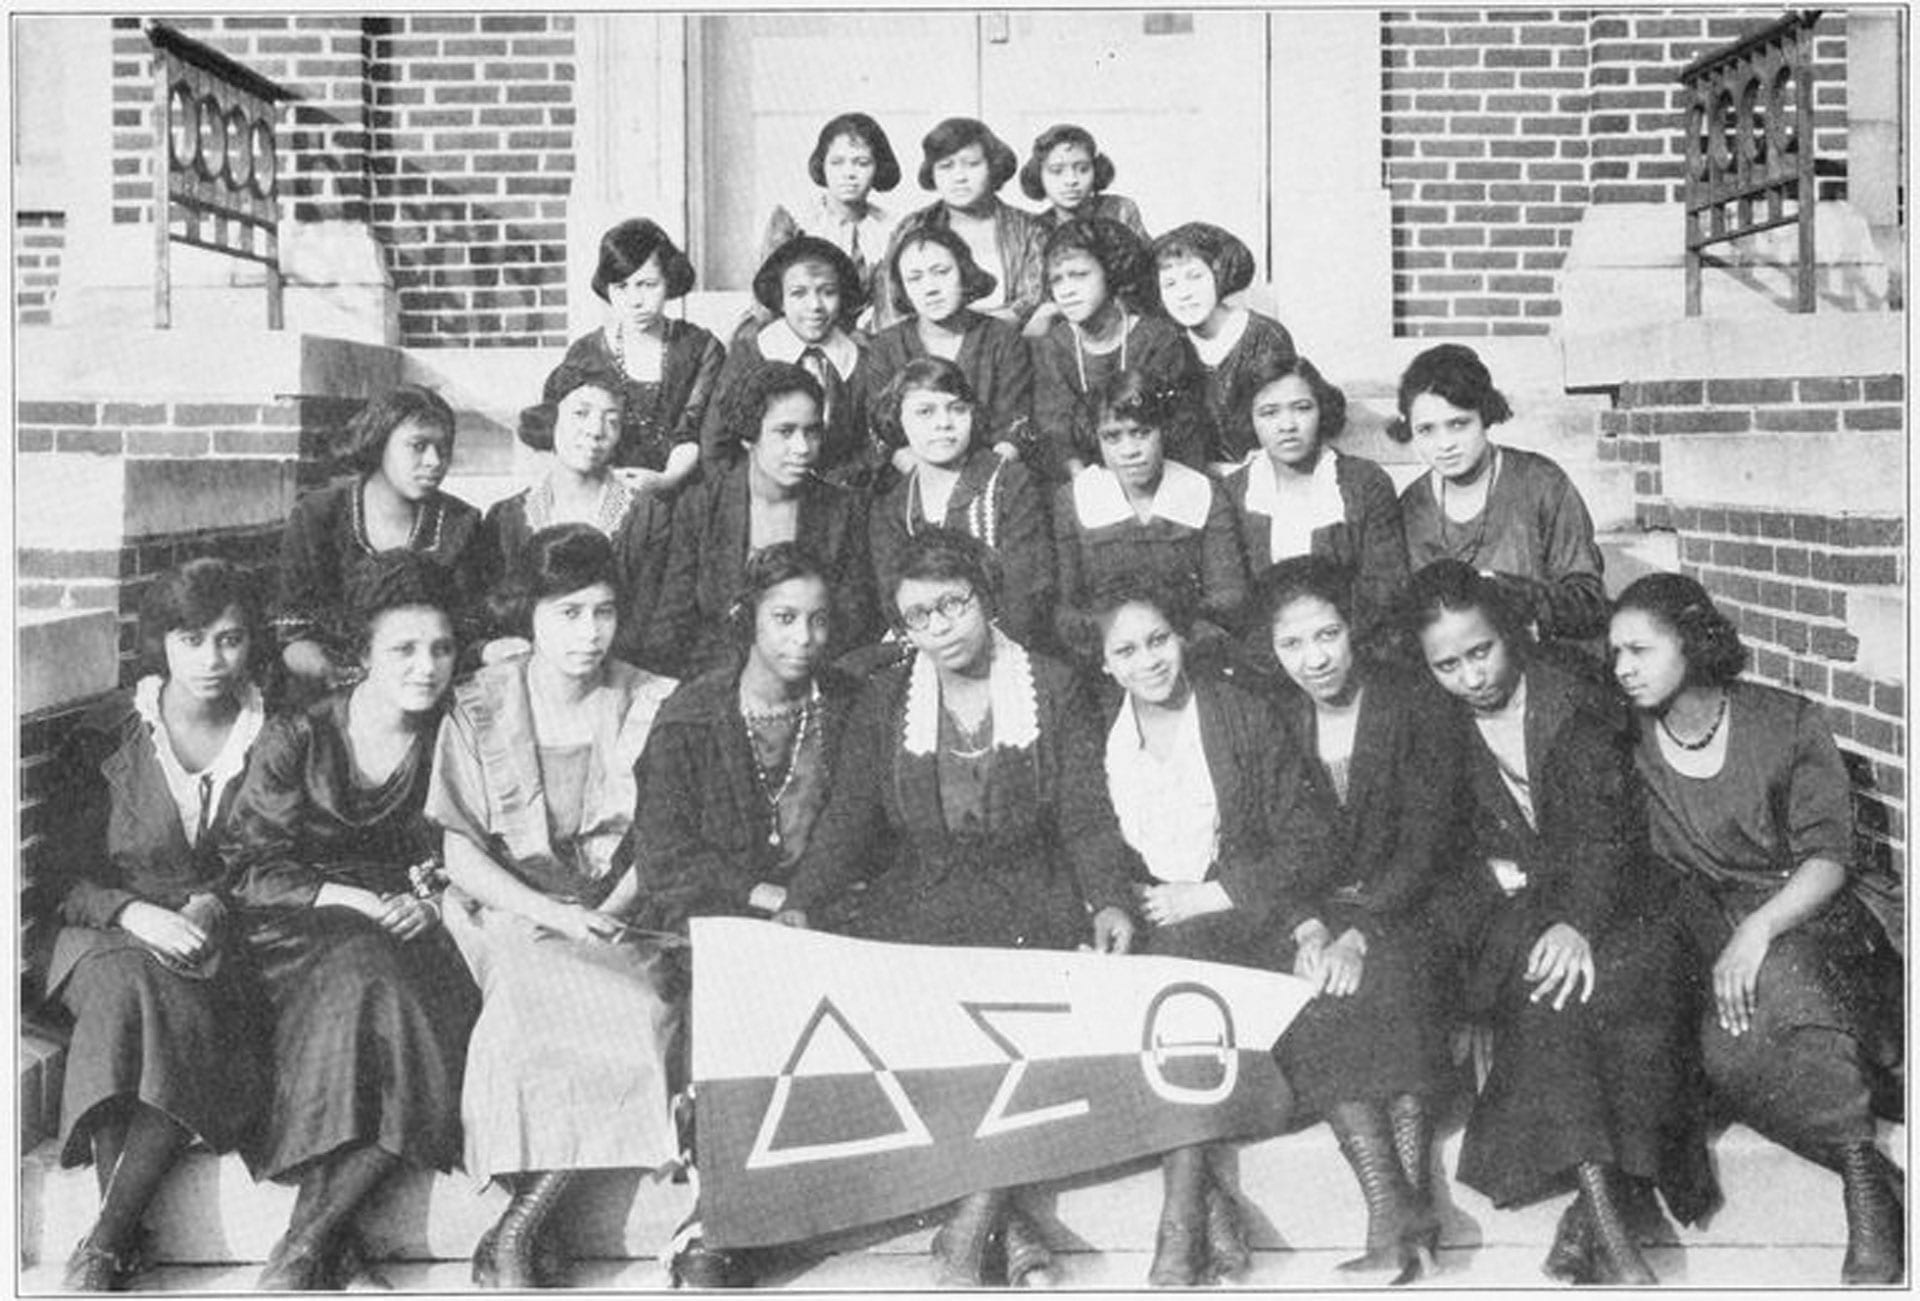 A group of women gathered on steps with a Delta Sigma Theta banner.